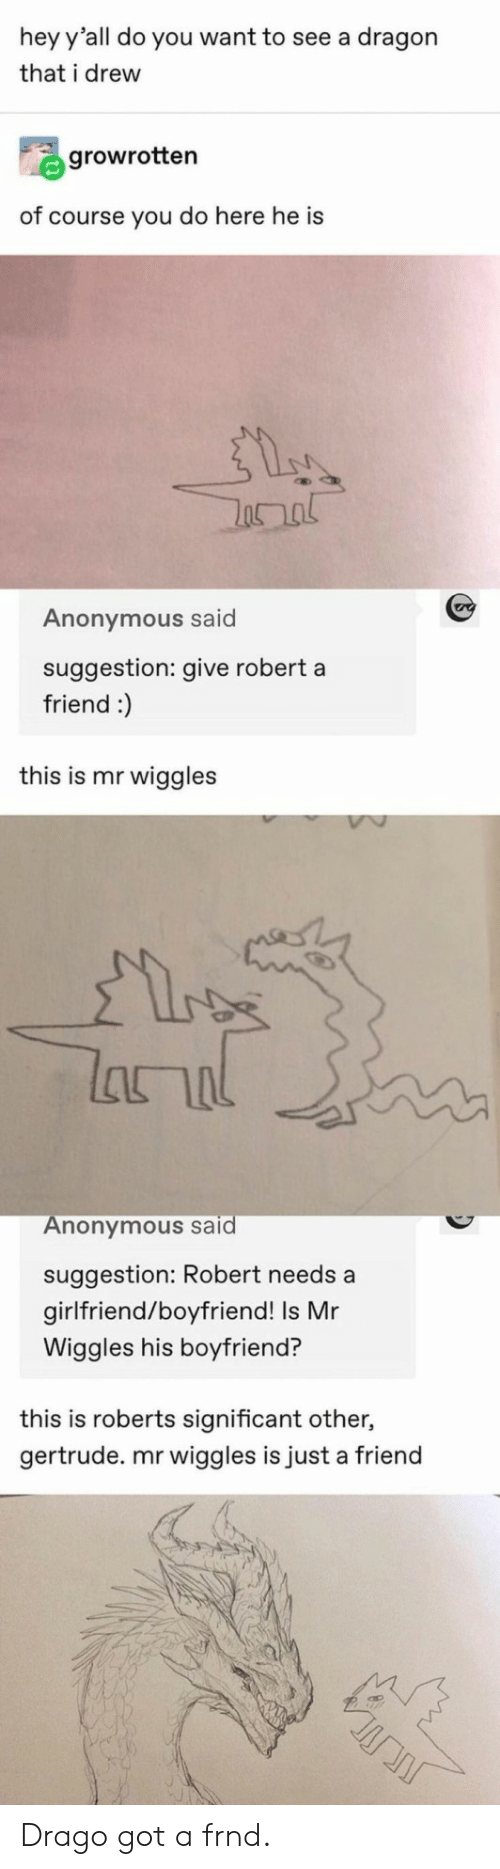 significant other: hey y'all do you want to see a dragon  that i drew  growrotten  of course you do here he is  Anonymous said  suggestion: give robert a  friend :)  this is mr wiggles  lanal  Anonymous said  suggestion: Robert needs a  girlfriend/boyfriend! Is Mr  Wiggles his boyfriend?  this is roberts significant other,  gertrude. mr wiggles is just a friend Drago got a frnd.